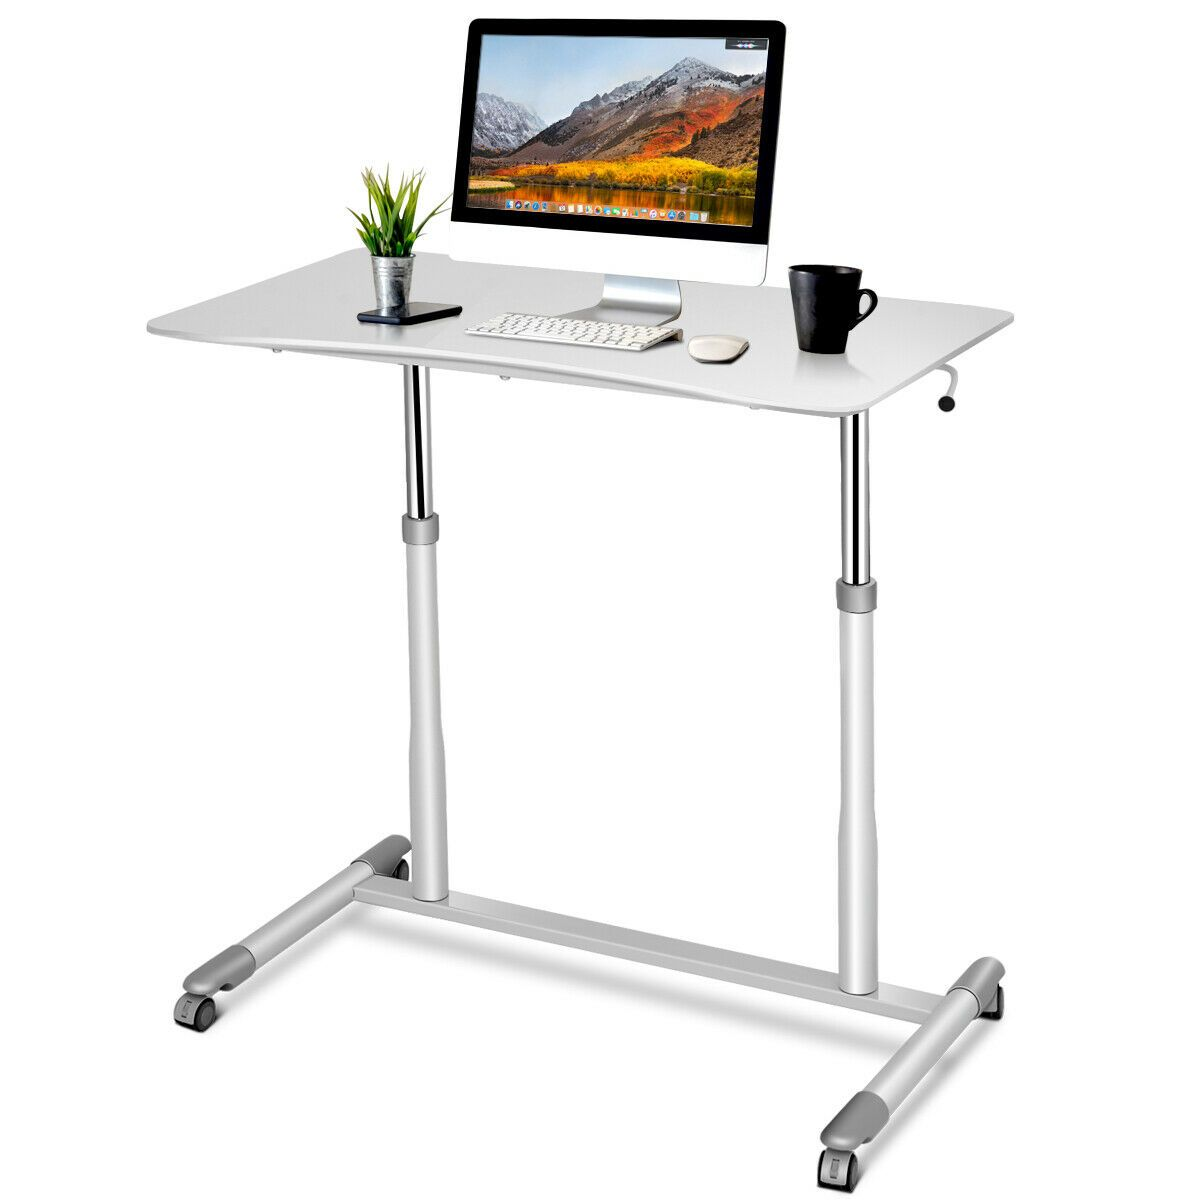 Costway Height Adjustable Computer Desk Sit Stand Rolling Notebook Table Stand Portable Walmart Com In 2020 Adjustable Computer Desk Adjustable Height Desk Computer Stand For Desk